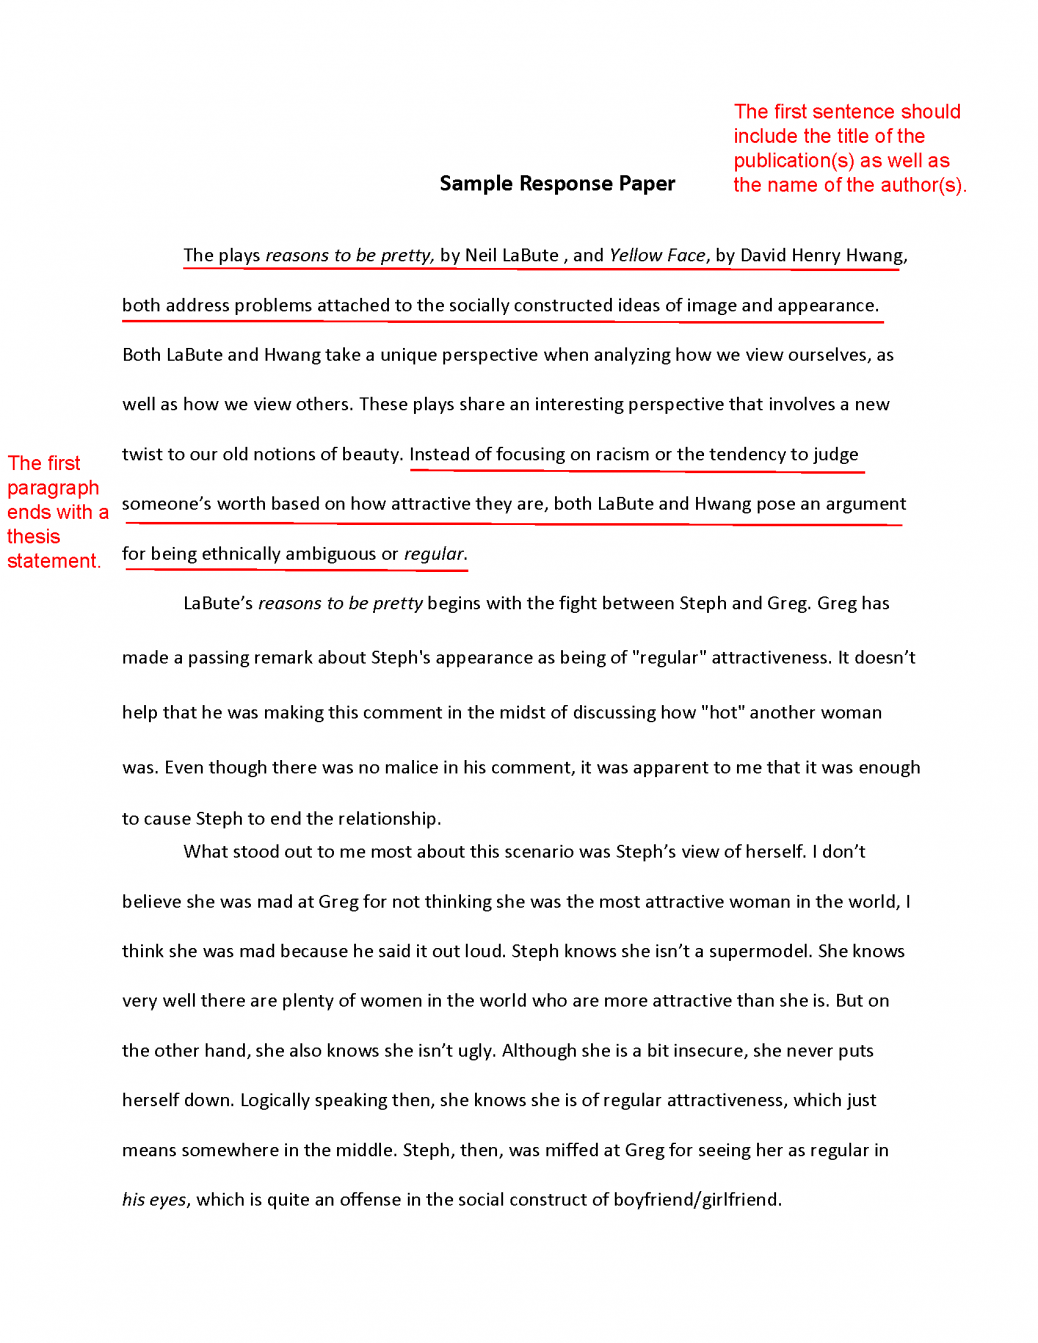 017 Proposal Essay Topics List Response Sociology Template Proposing Solution Examples Responce 1038x1343 Research Paper Of Rare Papers Full